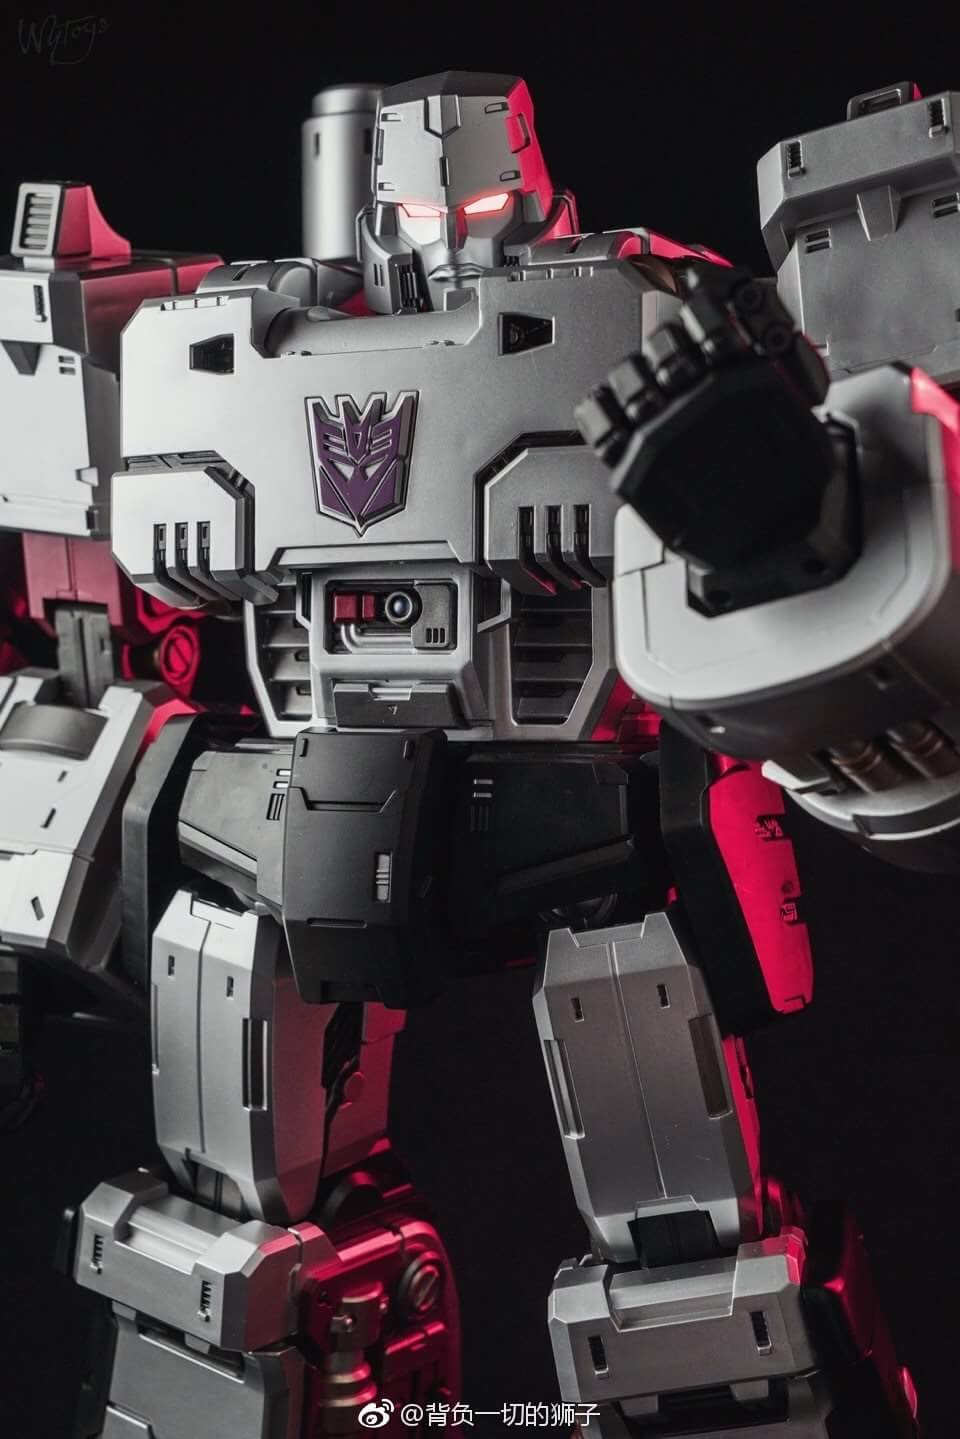 Figurines Transformers G1 (articulé, non transformable) ― Par  3A, Action Toys, Fewture, Toys Alliance, Sentinel, Kotobukiya, Kids Logic, Herocross, EX Gokin, etc - Page 6 9yKPucLF_o